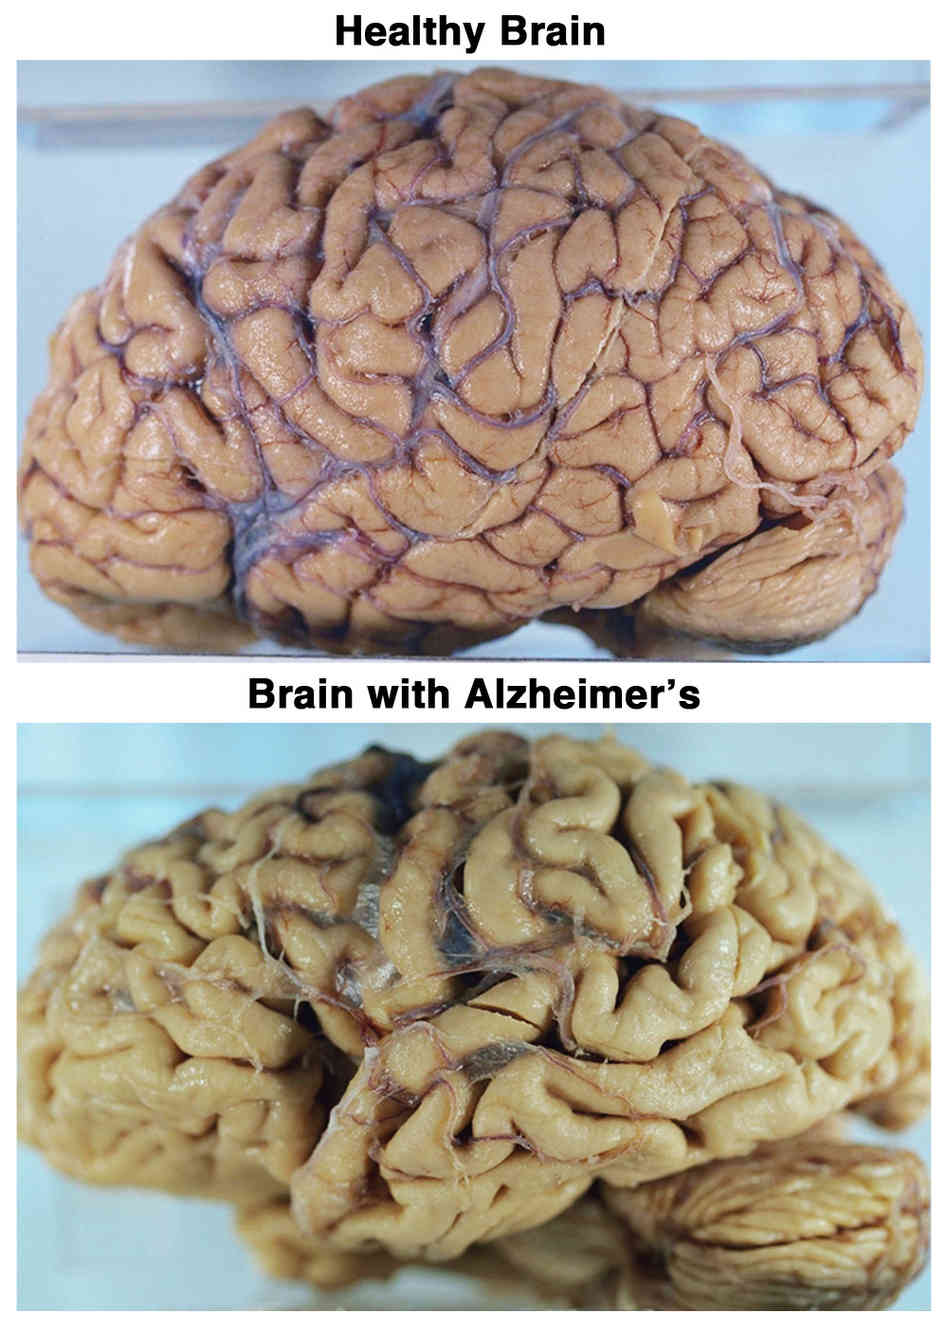 What's to know about Alzheimer's disease?